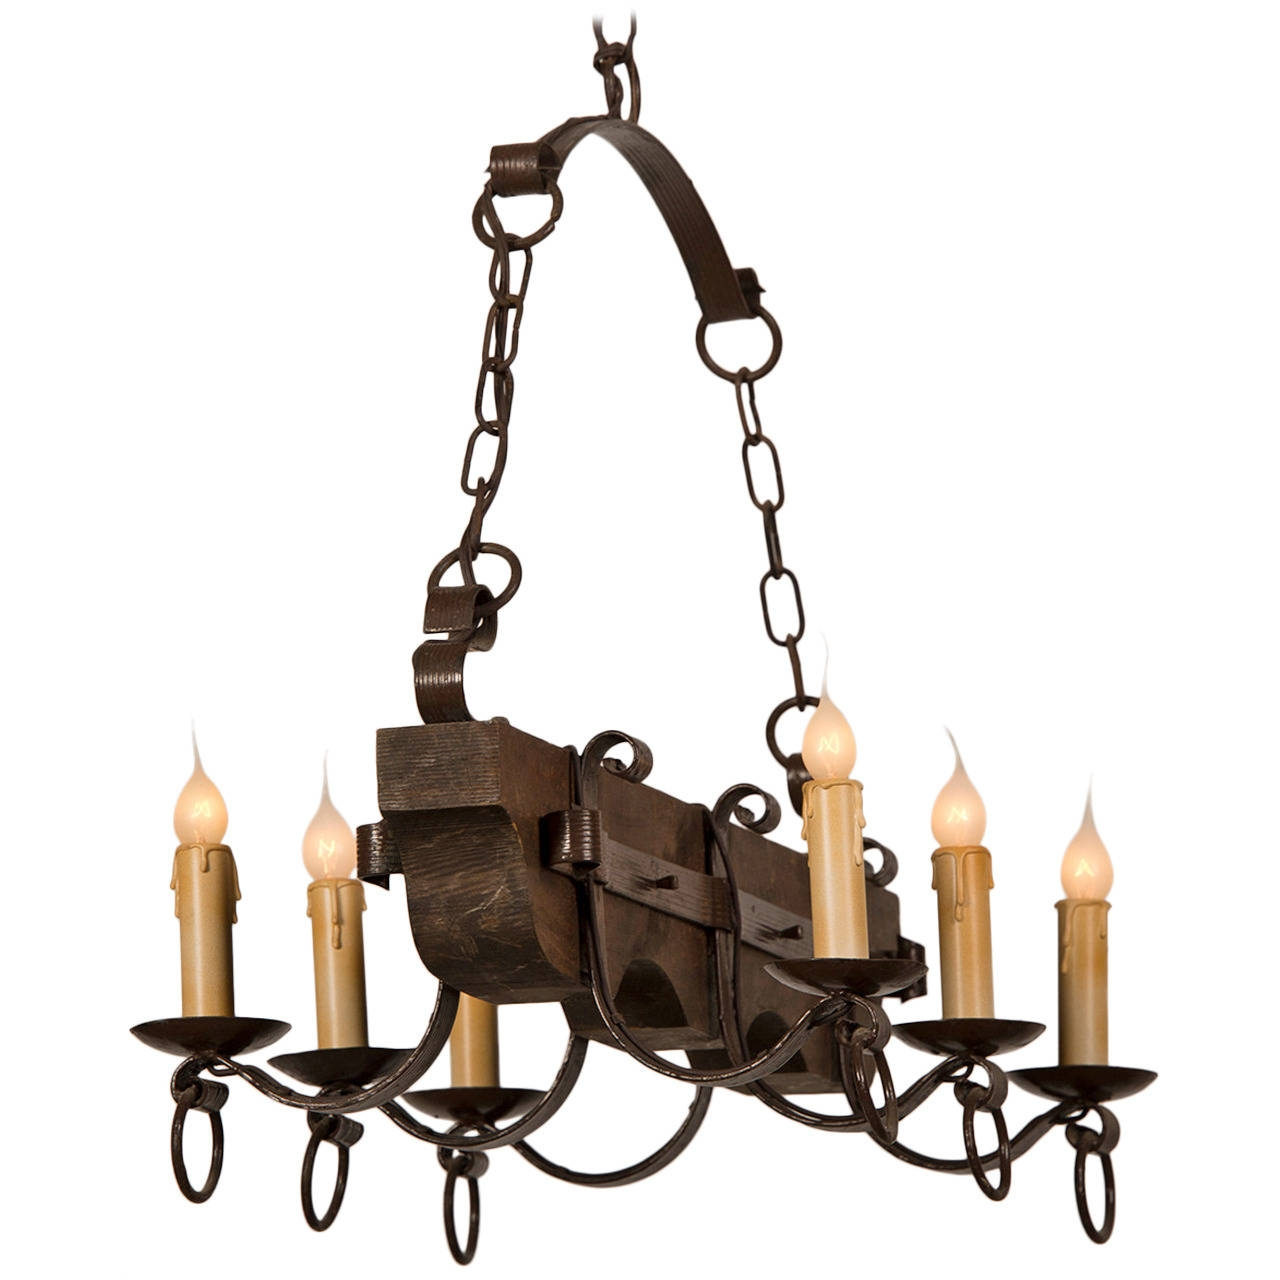 Rectangular Wrought Iron Chandelier Pictures Of Dining: 15 Photos Black Iron Chandeliers